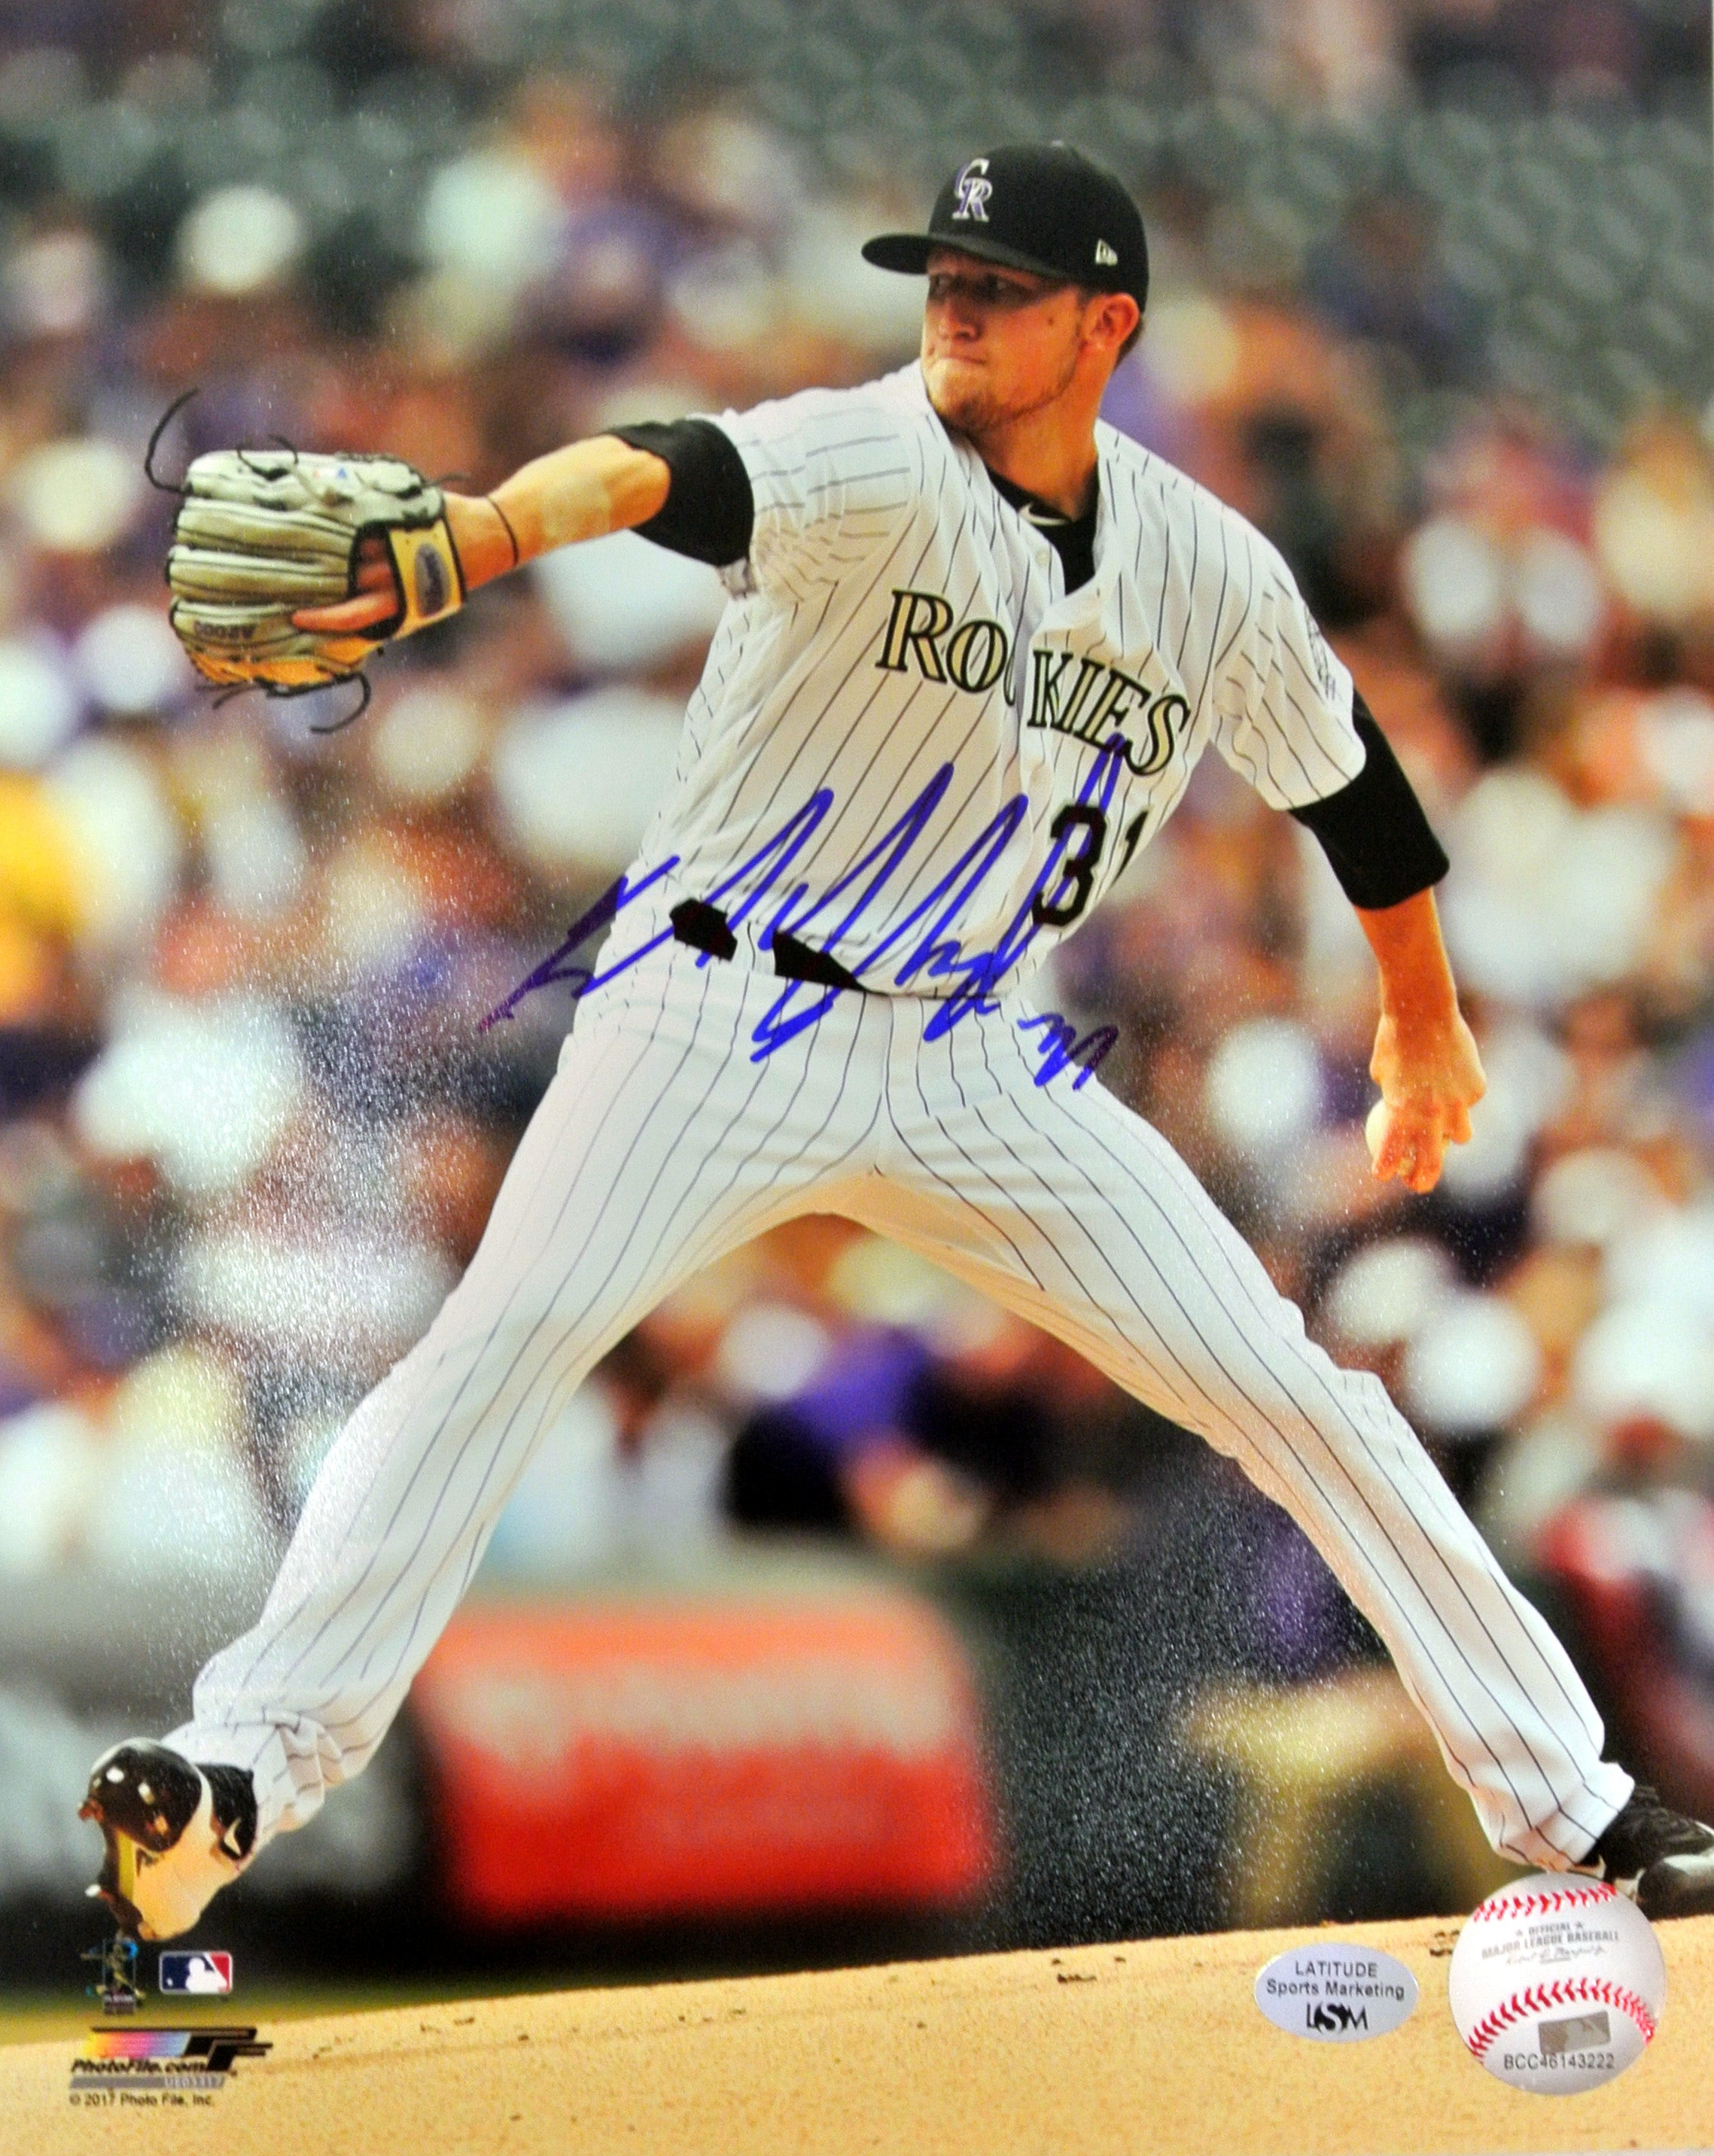 Kyle Freeland Signed 8x10 Action Photo (White Uniform) (Blowout)